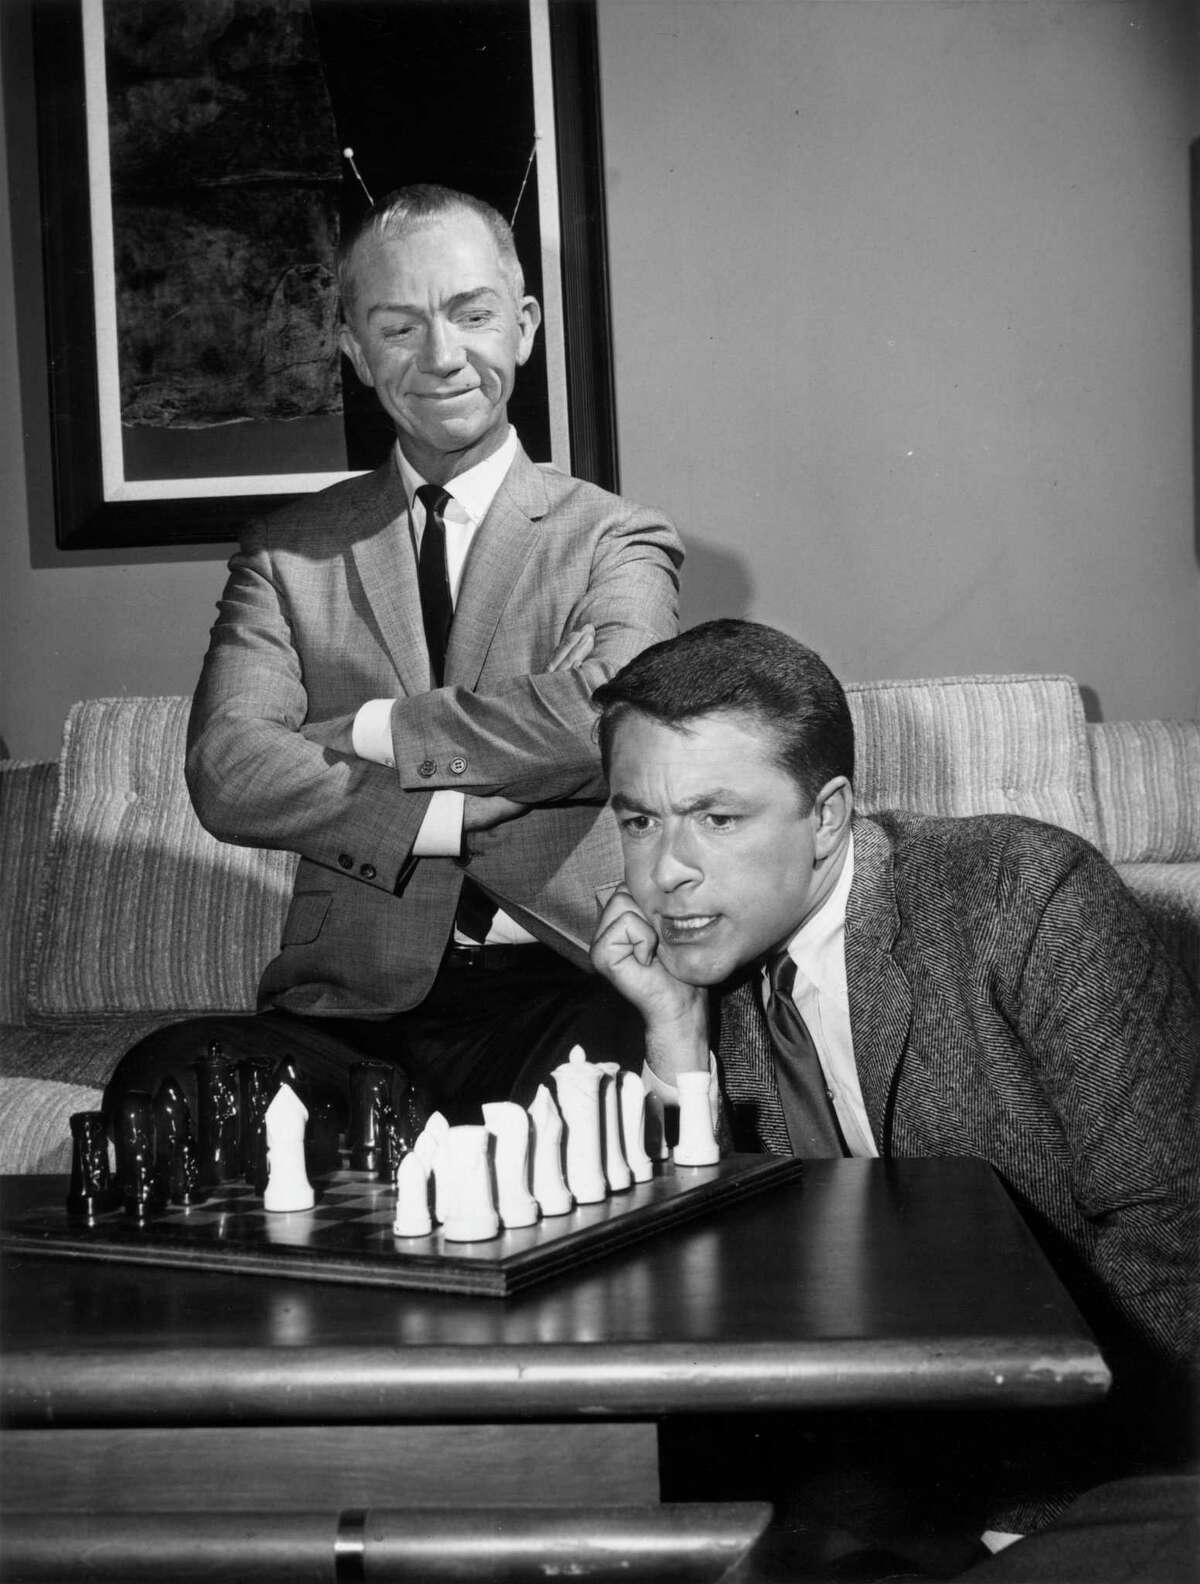 """This 1963 photo shows Ray Walston and Bill Bixby, stars of """"My Favorite Martian"""" television show."""